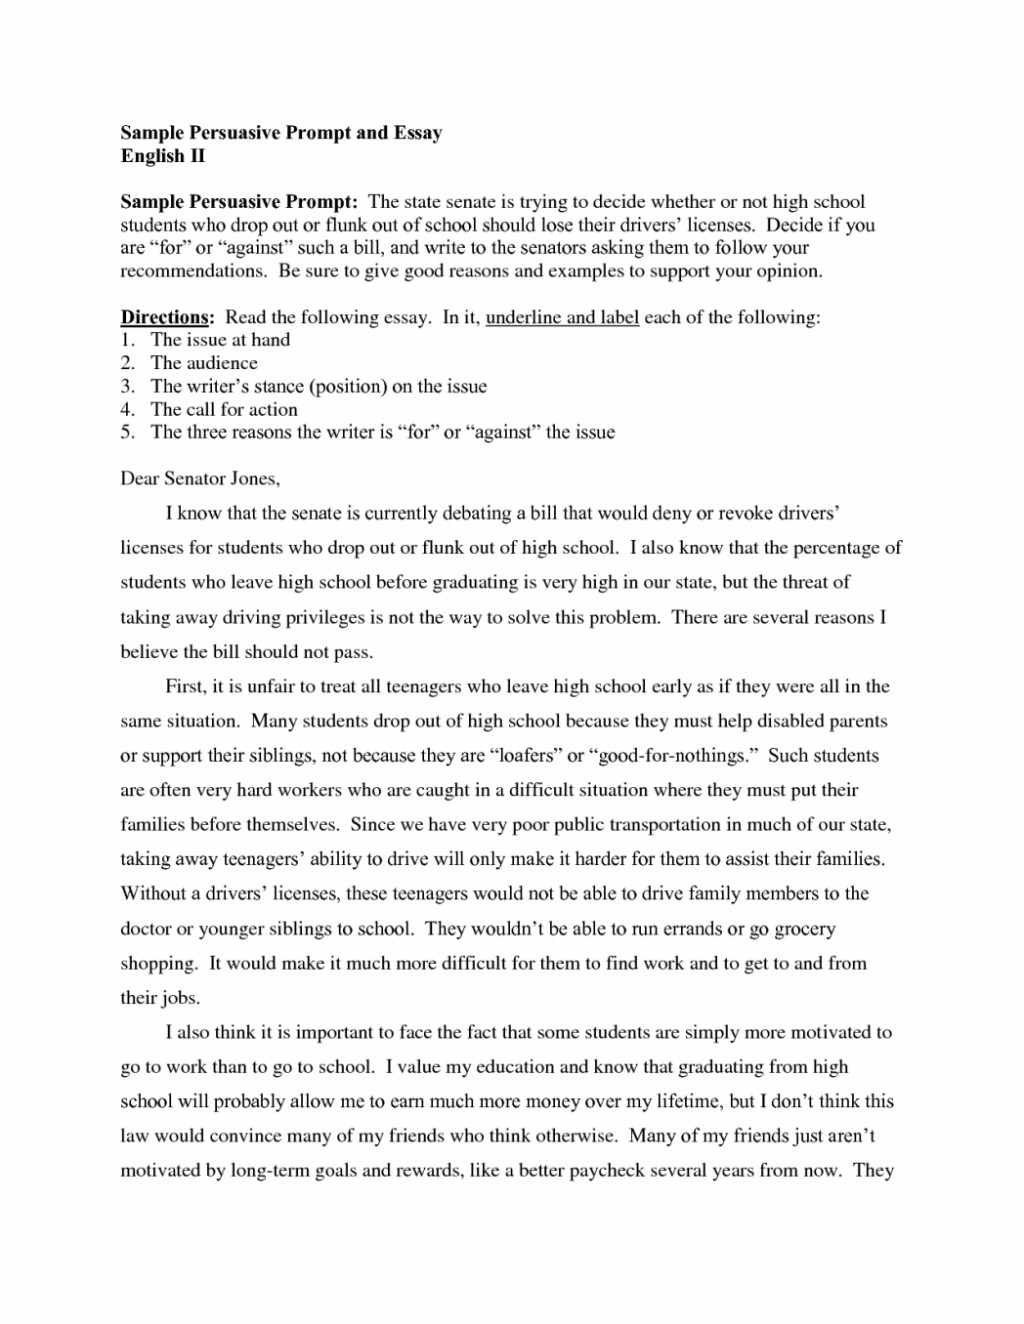 015 Essay Example Prompts Highool Students College Paper Academic Writing Argumentative Topics For Sample Examples Of Persuasive Essays Pictur Funny Creative 1048x1356 Unique High School In Urdu Halloween Questions Large